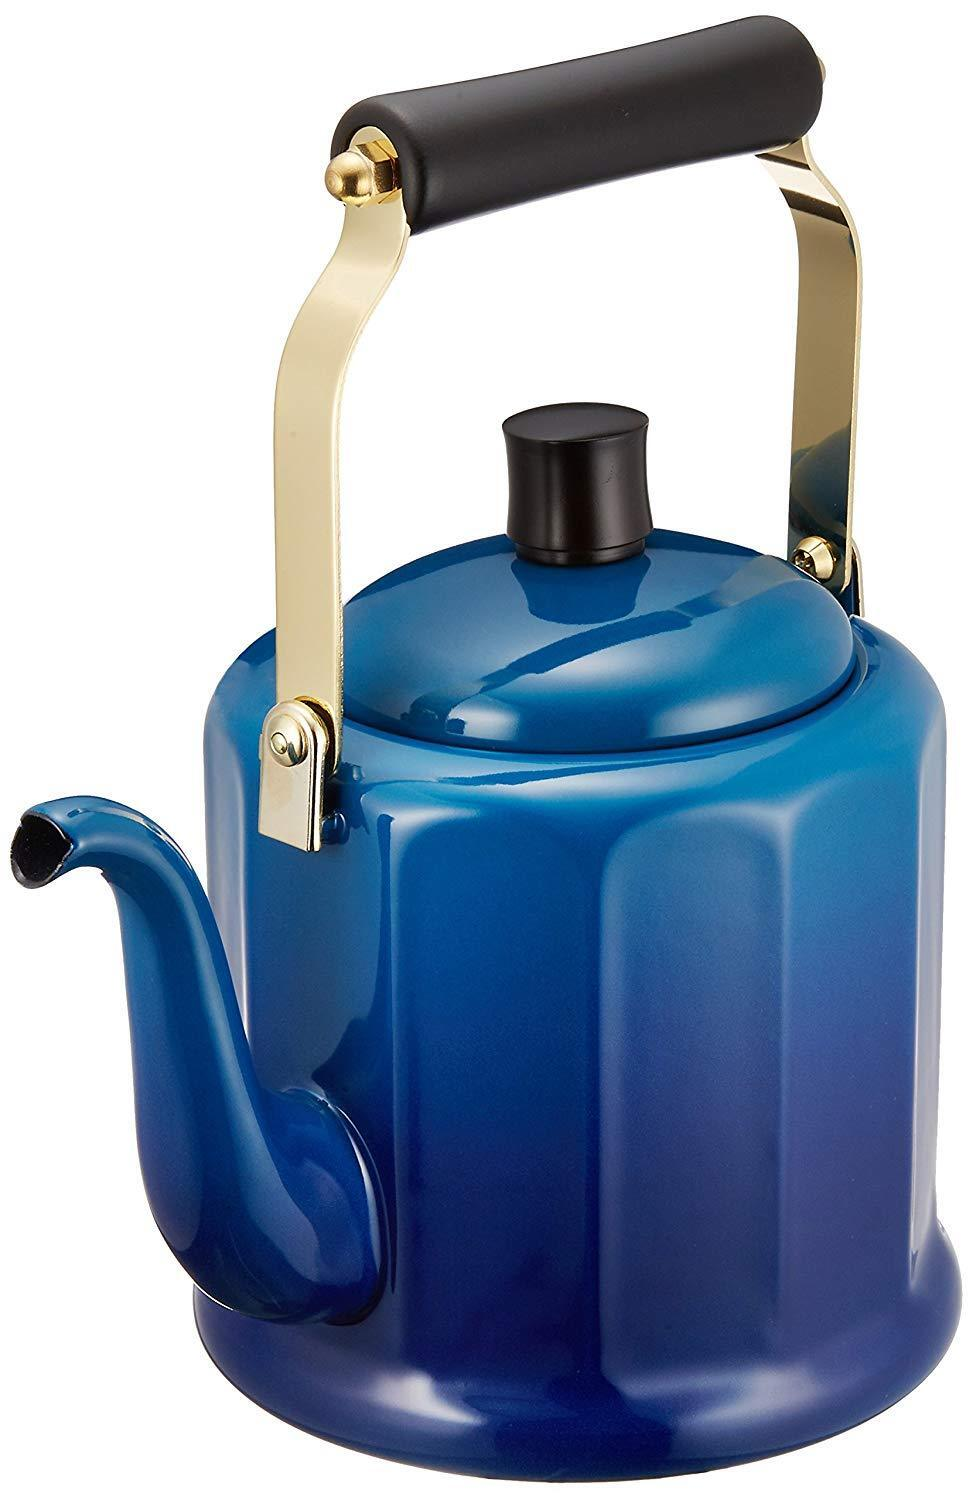 New Hor Noda High Quality Royal Classic Kettle 2L bleu IH 200V RCL-50KB JPN Wt